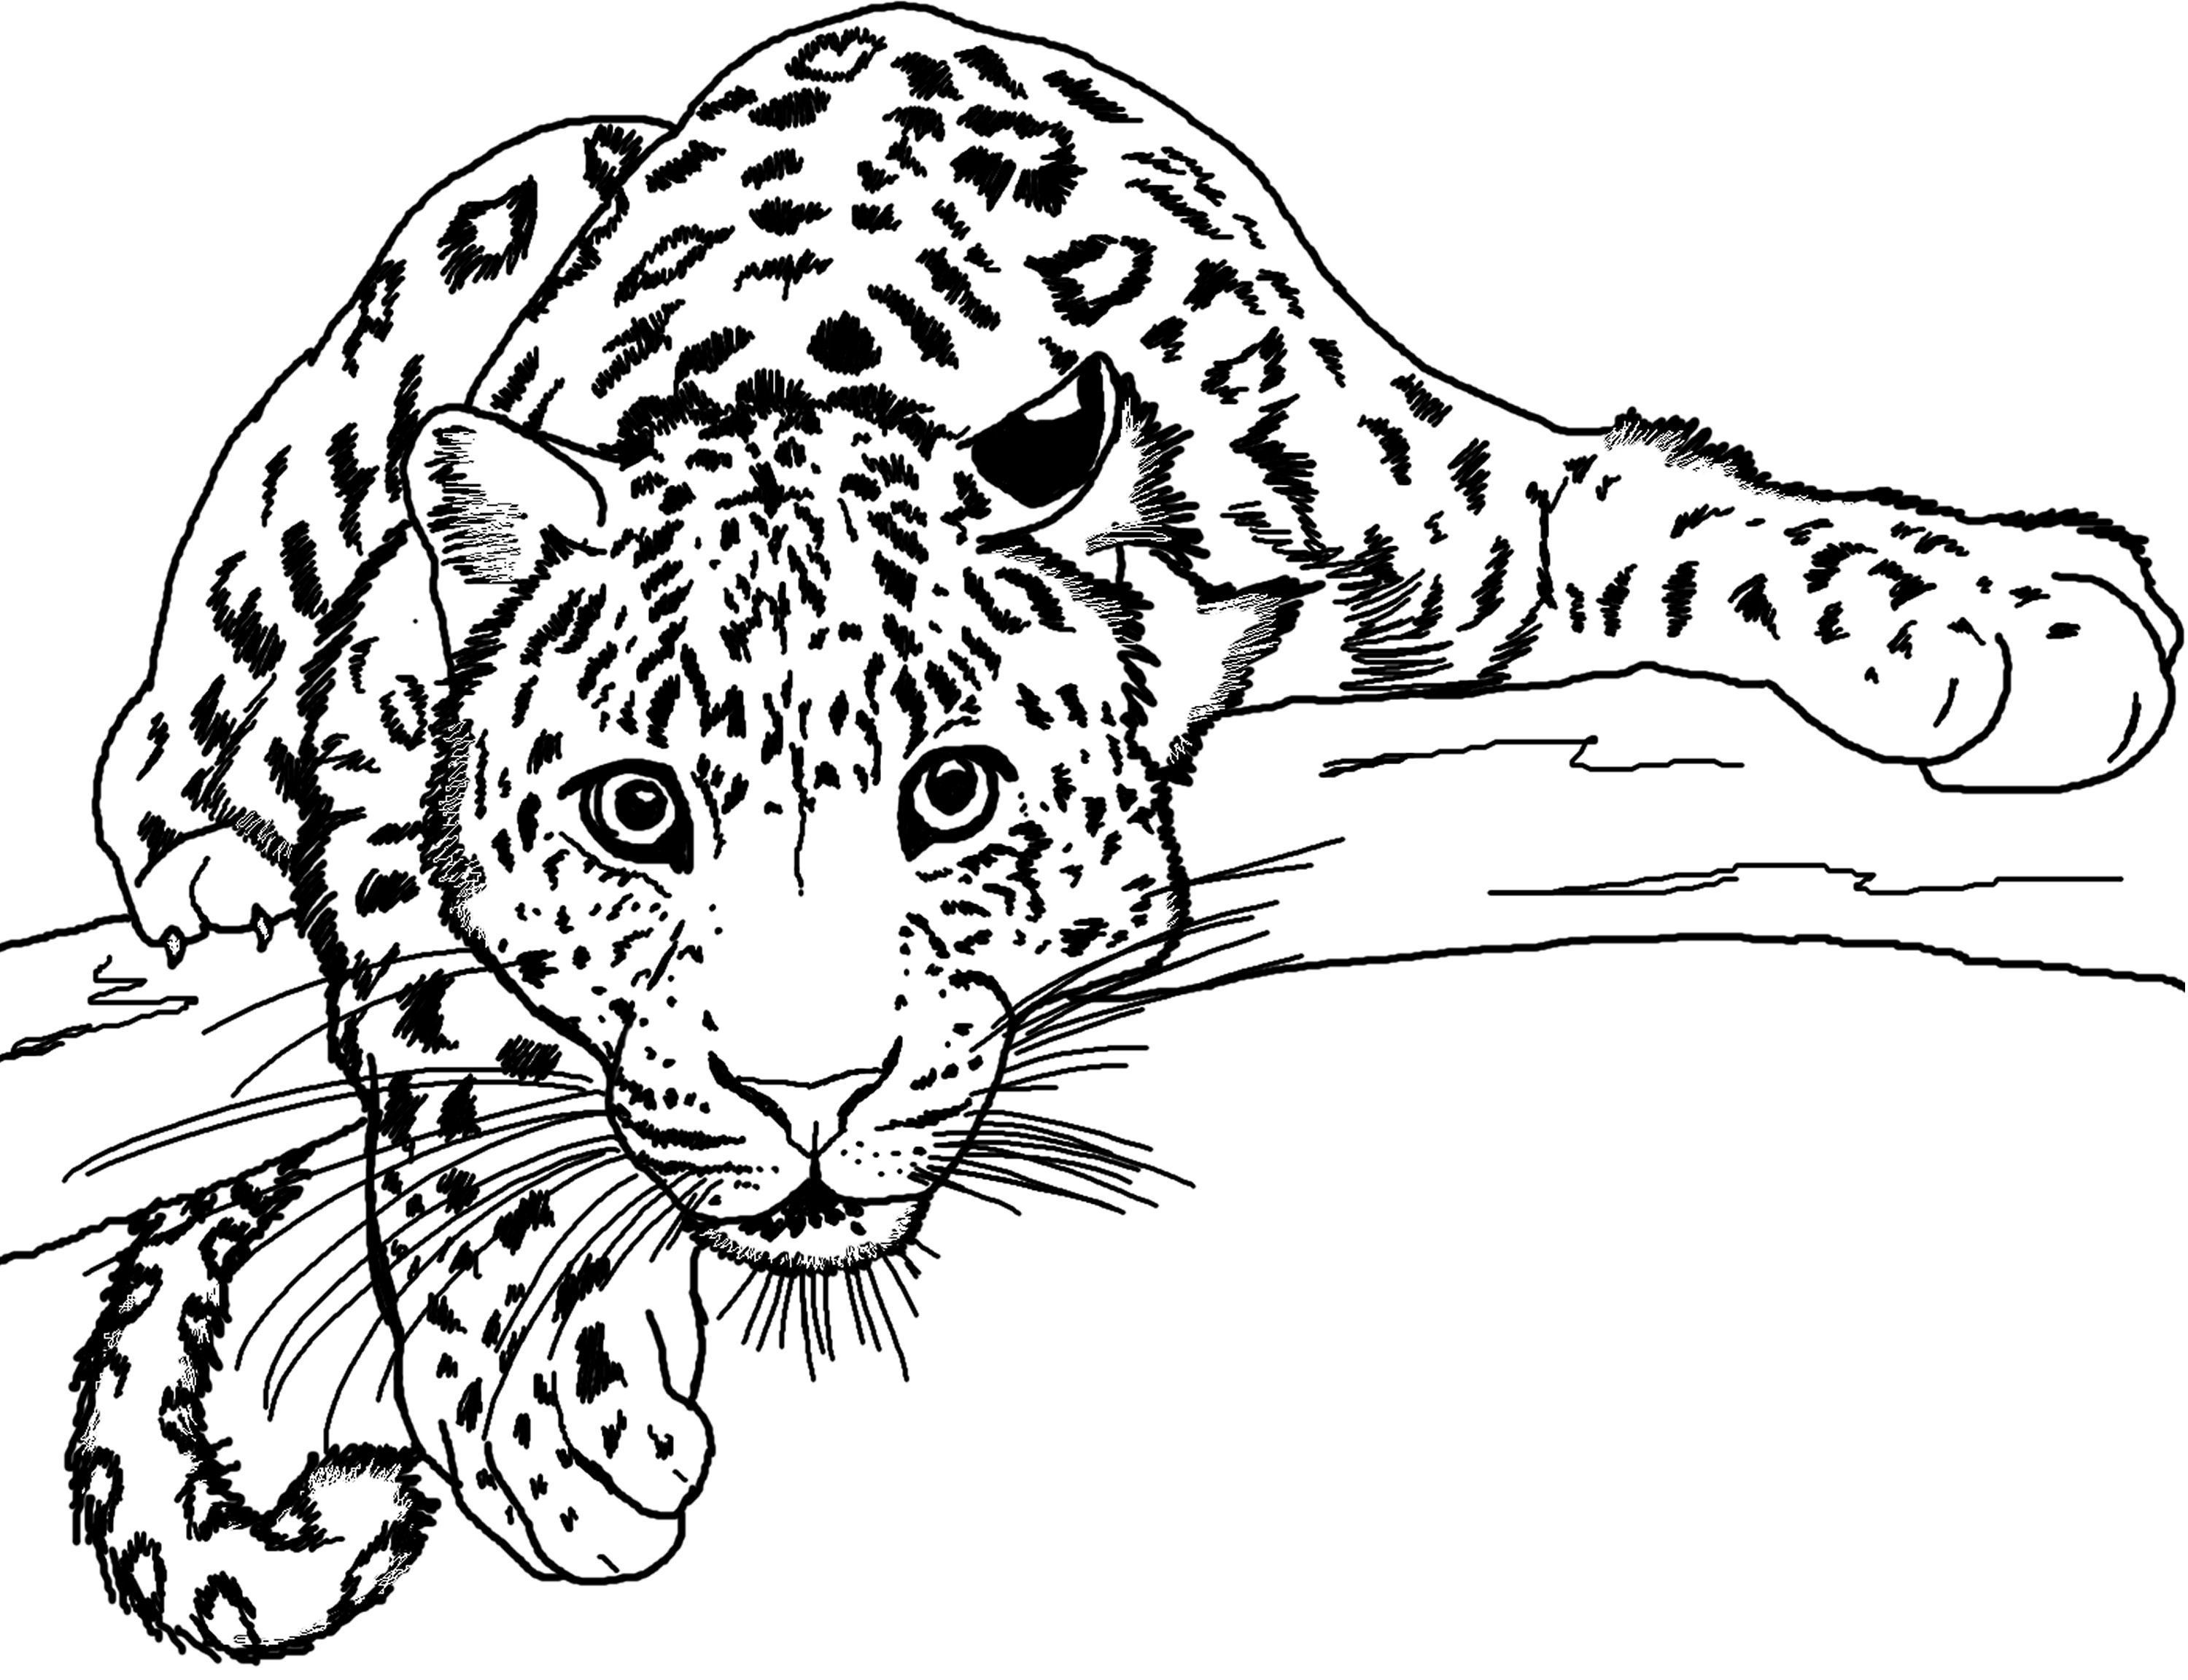 Printable Coloring Pages Of Animals For Adults Animal Coloring Pages Animal Coloring Books Coloring Pages